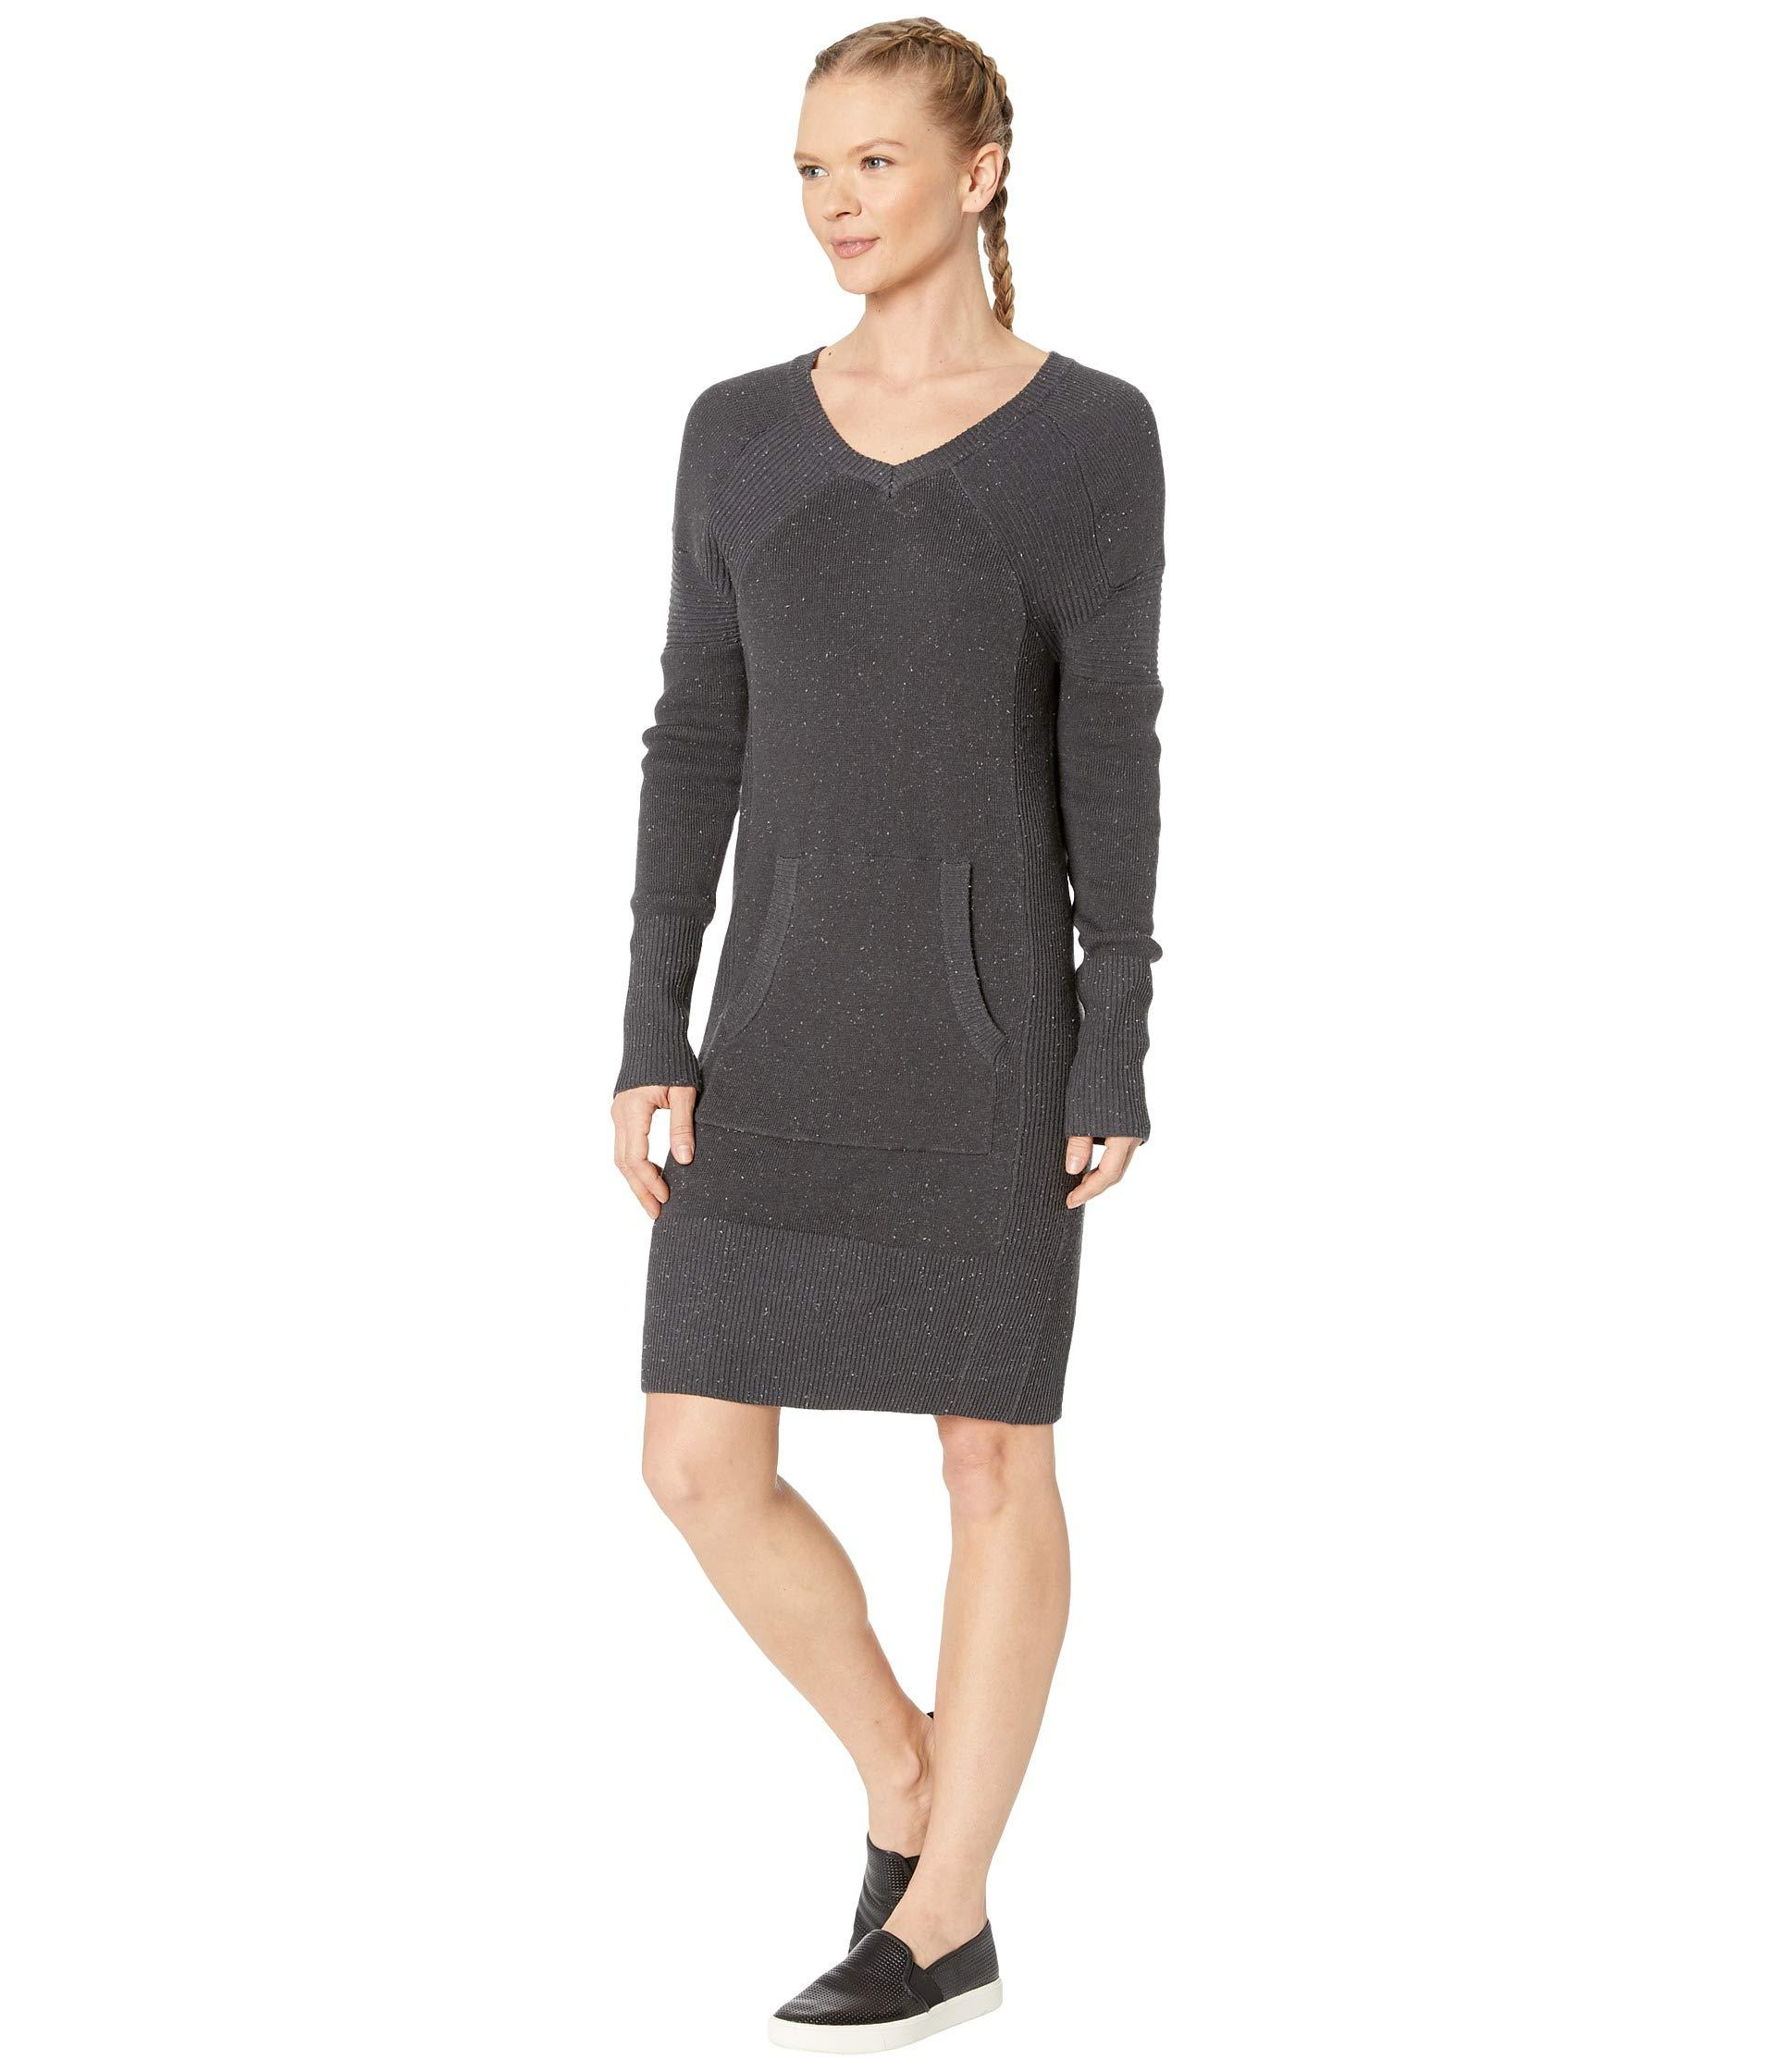 0a78f3988ce1 Lyst - Prana Avalone Dress in Gray - Save 29%